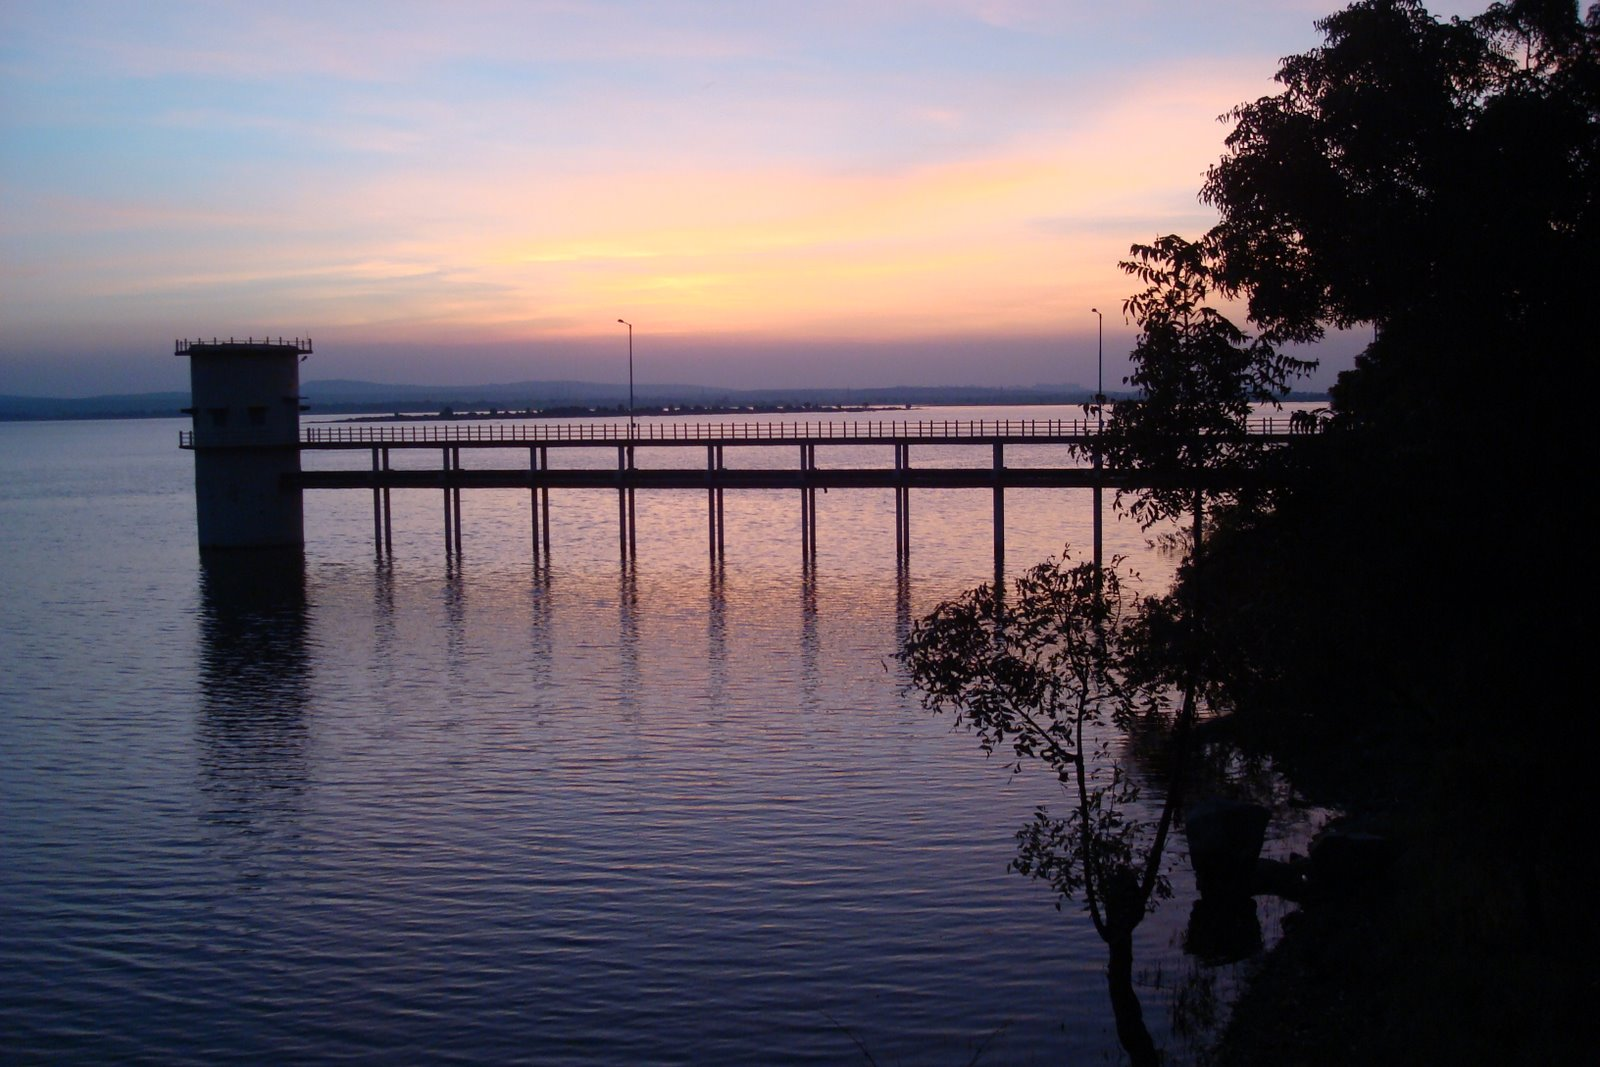 Ramappa Lake Warangal Images - Lake View